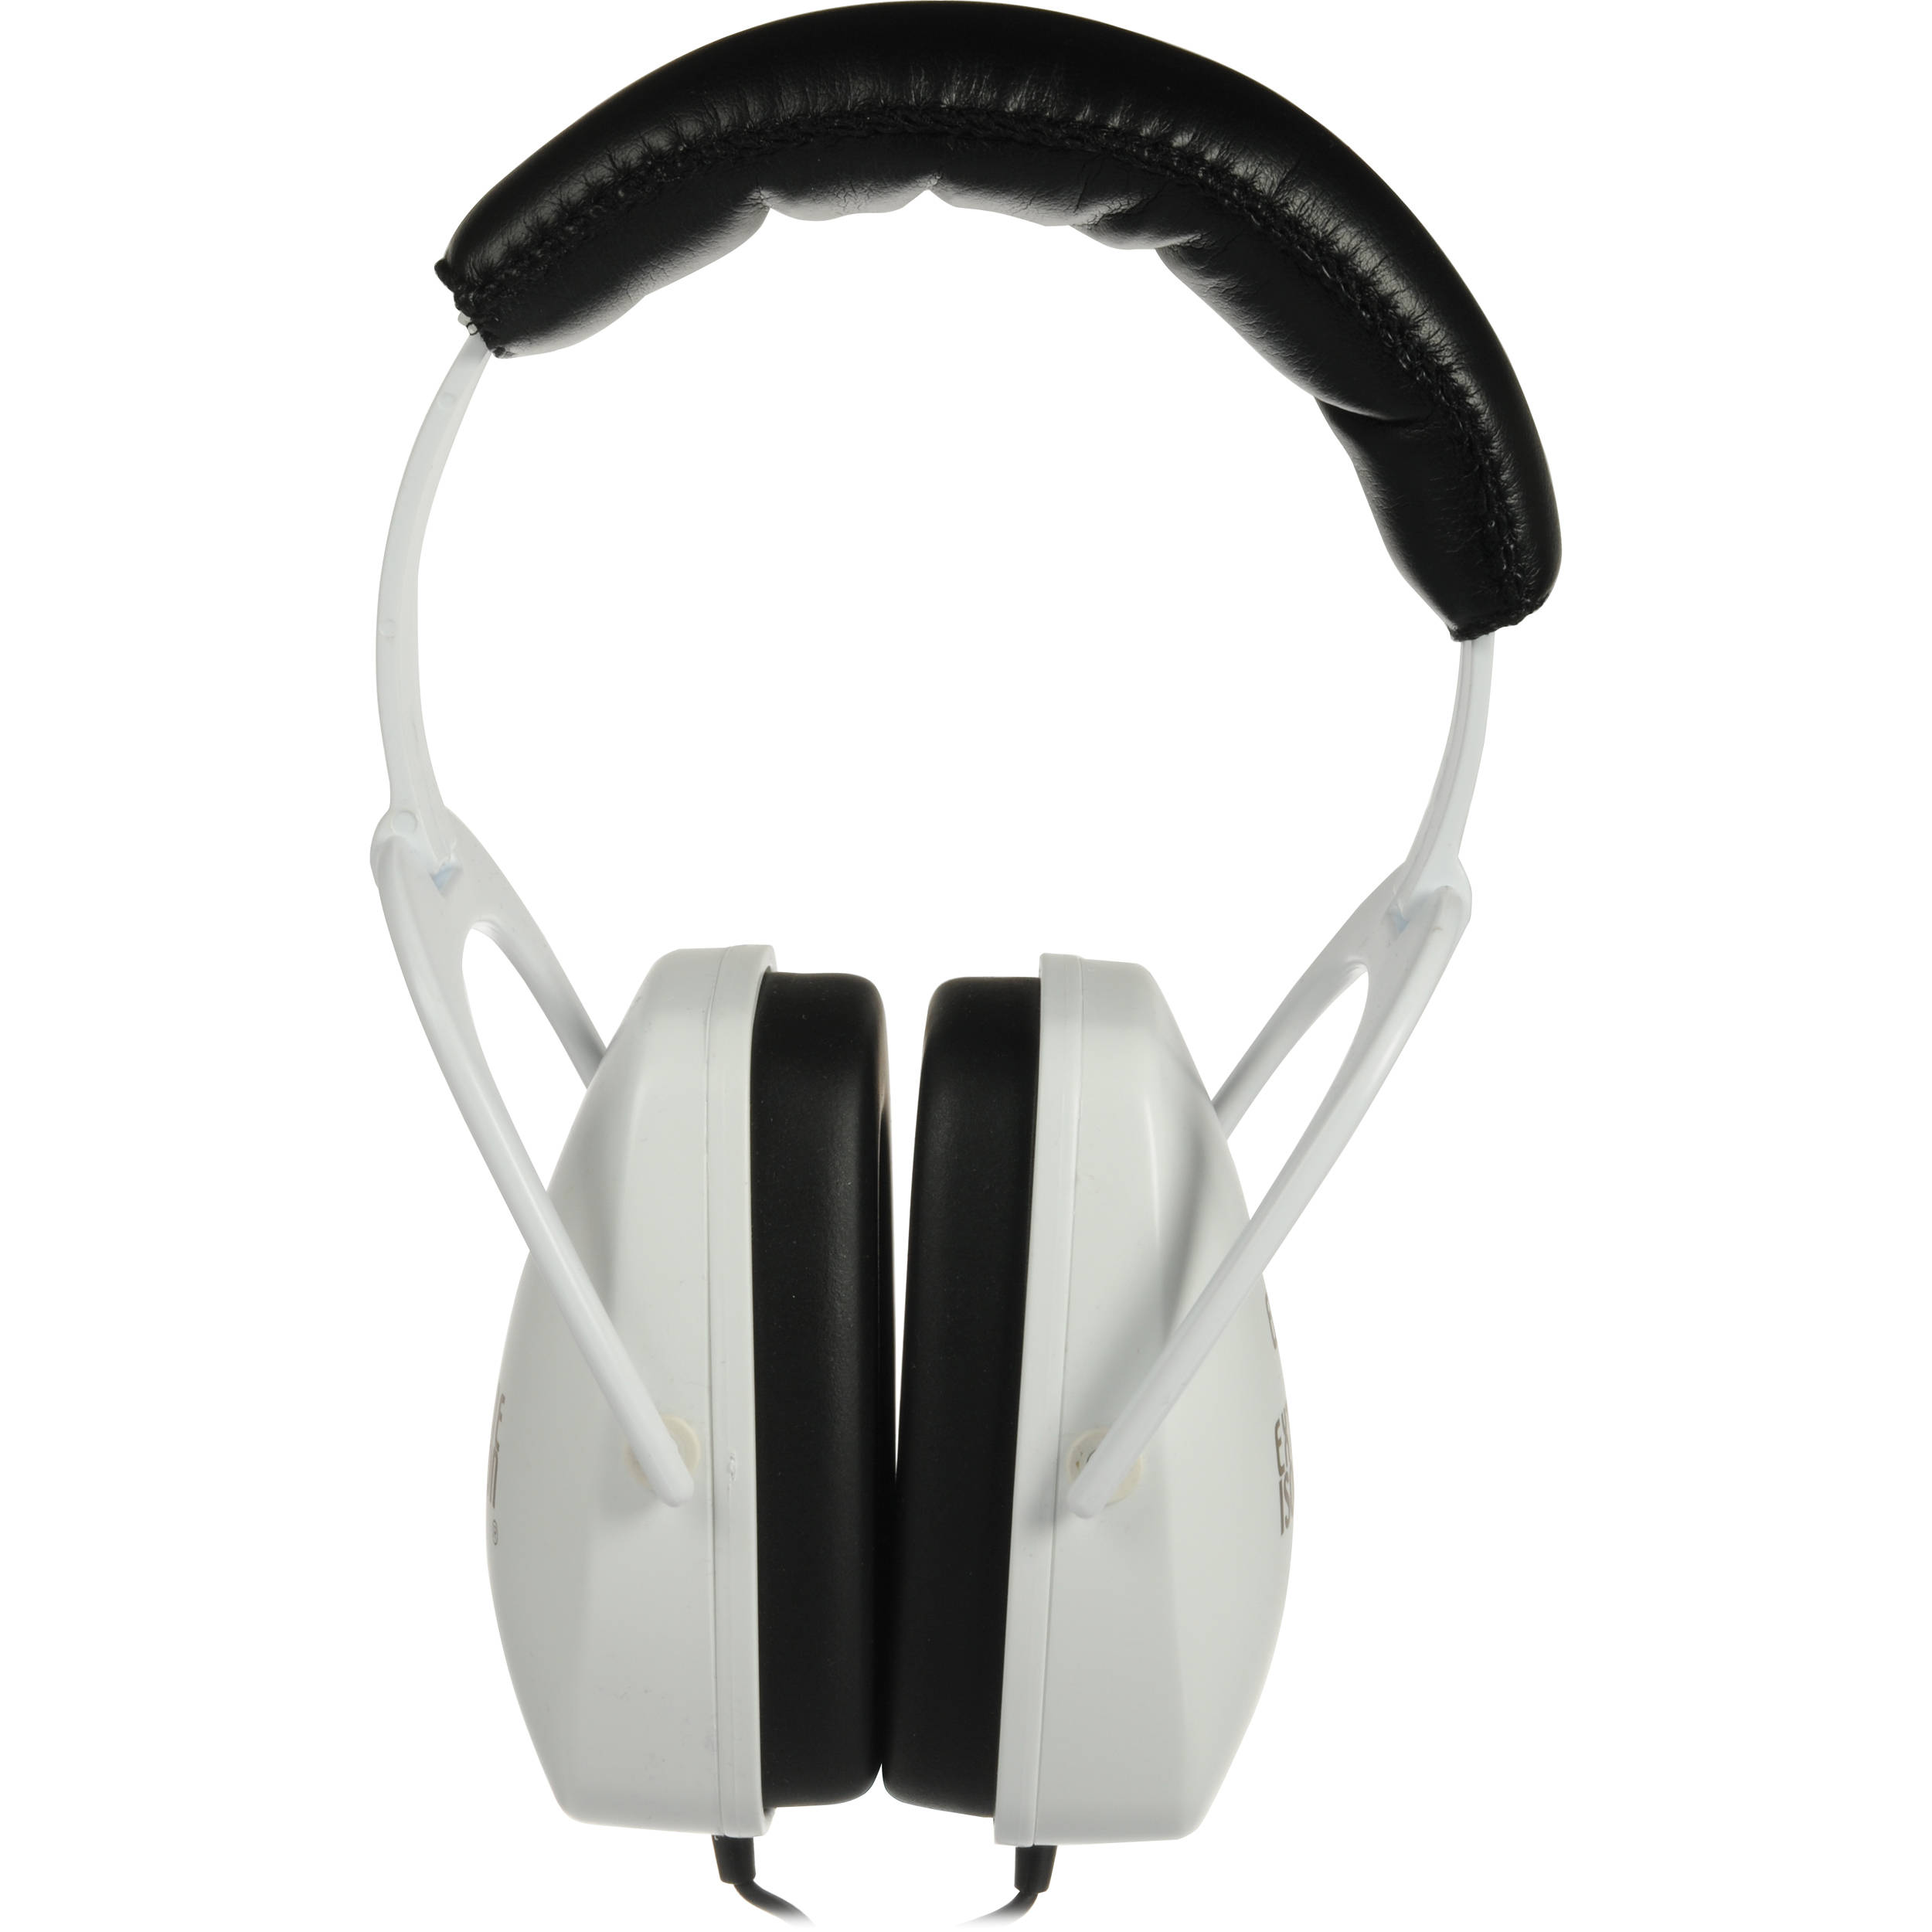 direct sound headphones ex 29 extreme isolation ex 29w b h photo. Black Bedroom Furniture Sets. Home Design Ideas